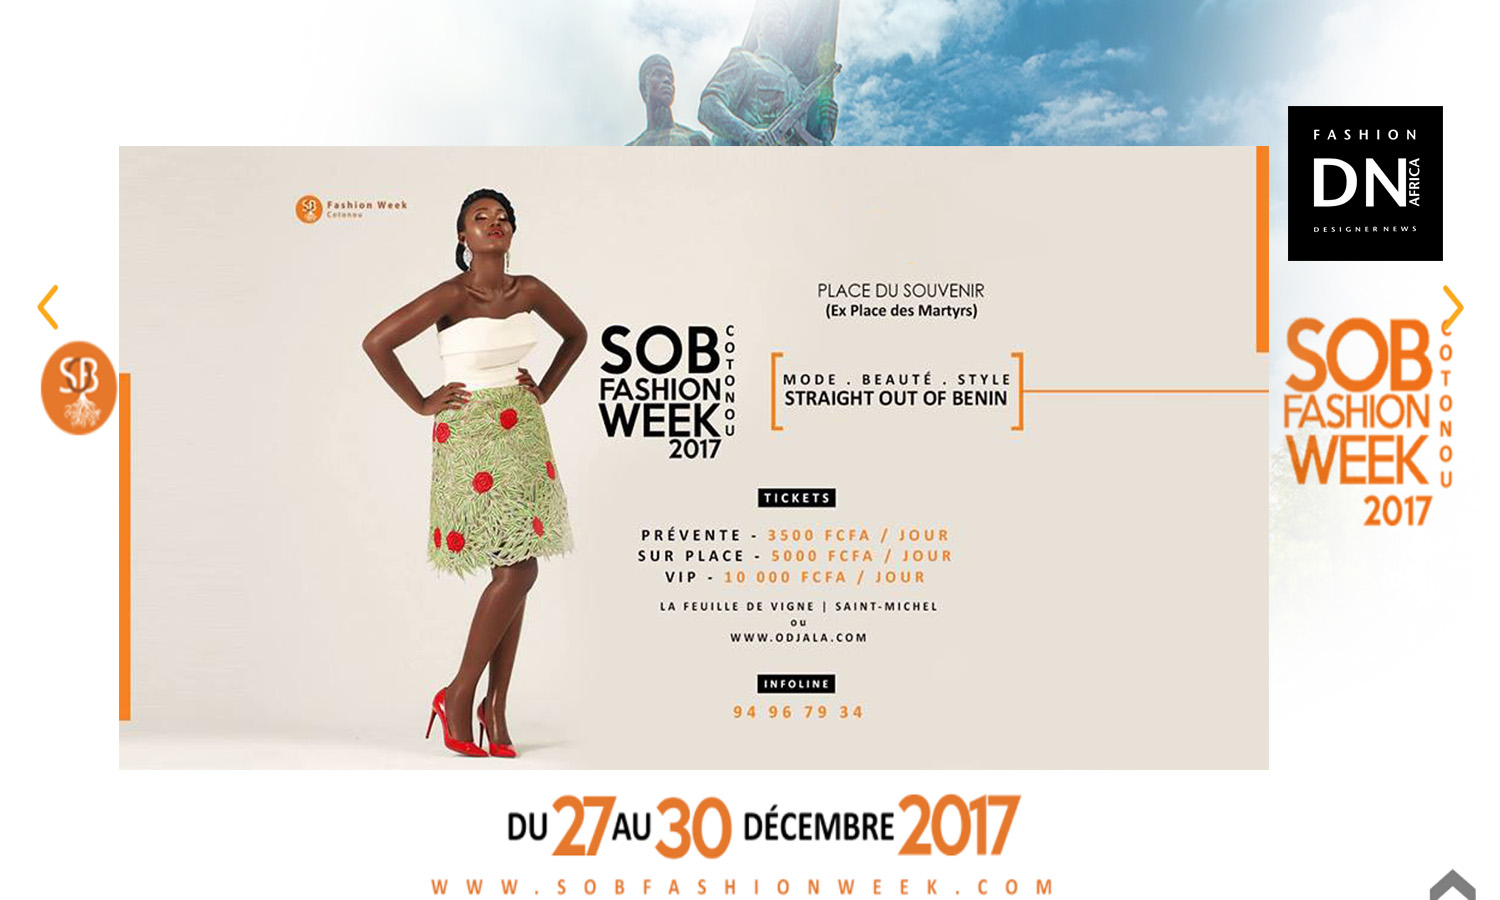 african fashion magazine-sob fashion week-dn africa